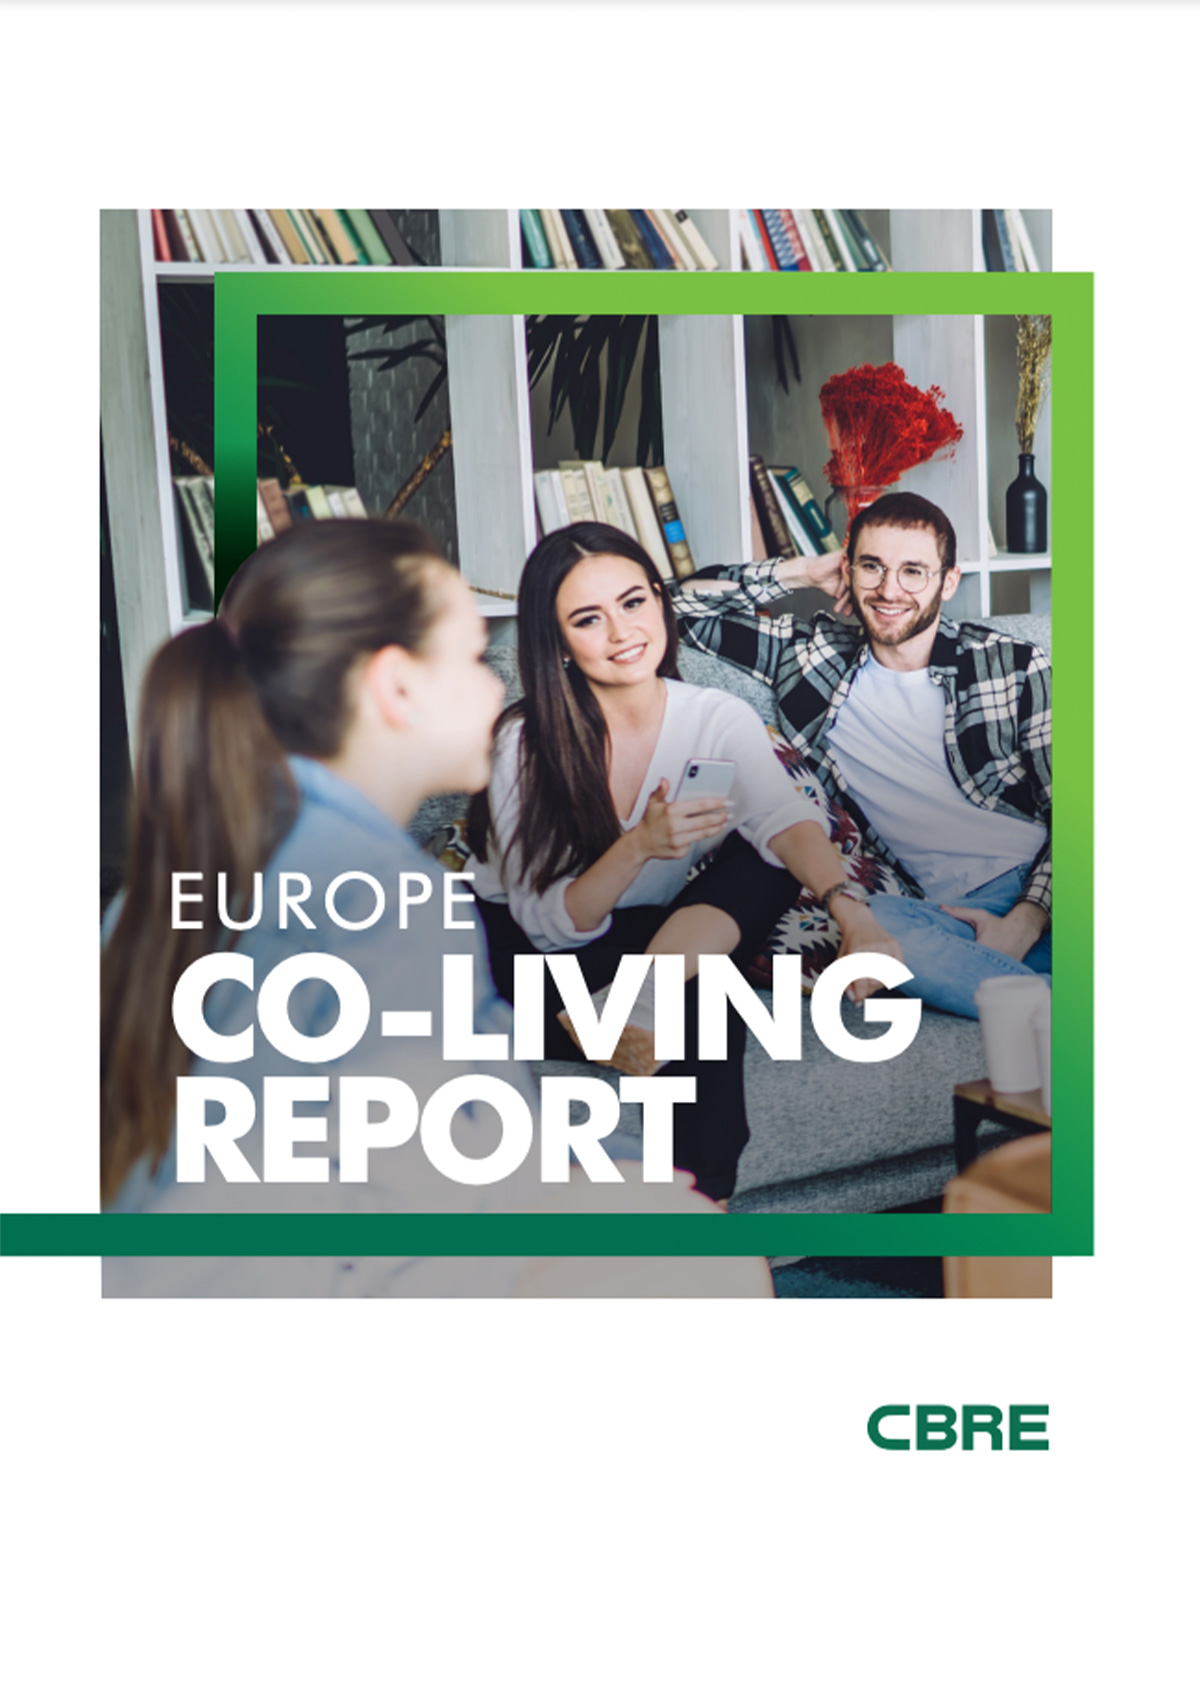 Europe Co-Living: Key Trends & Key Cities